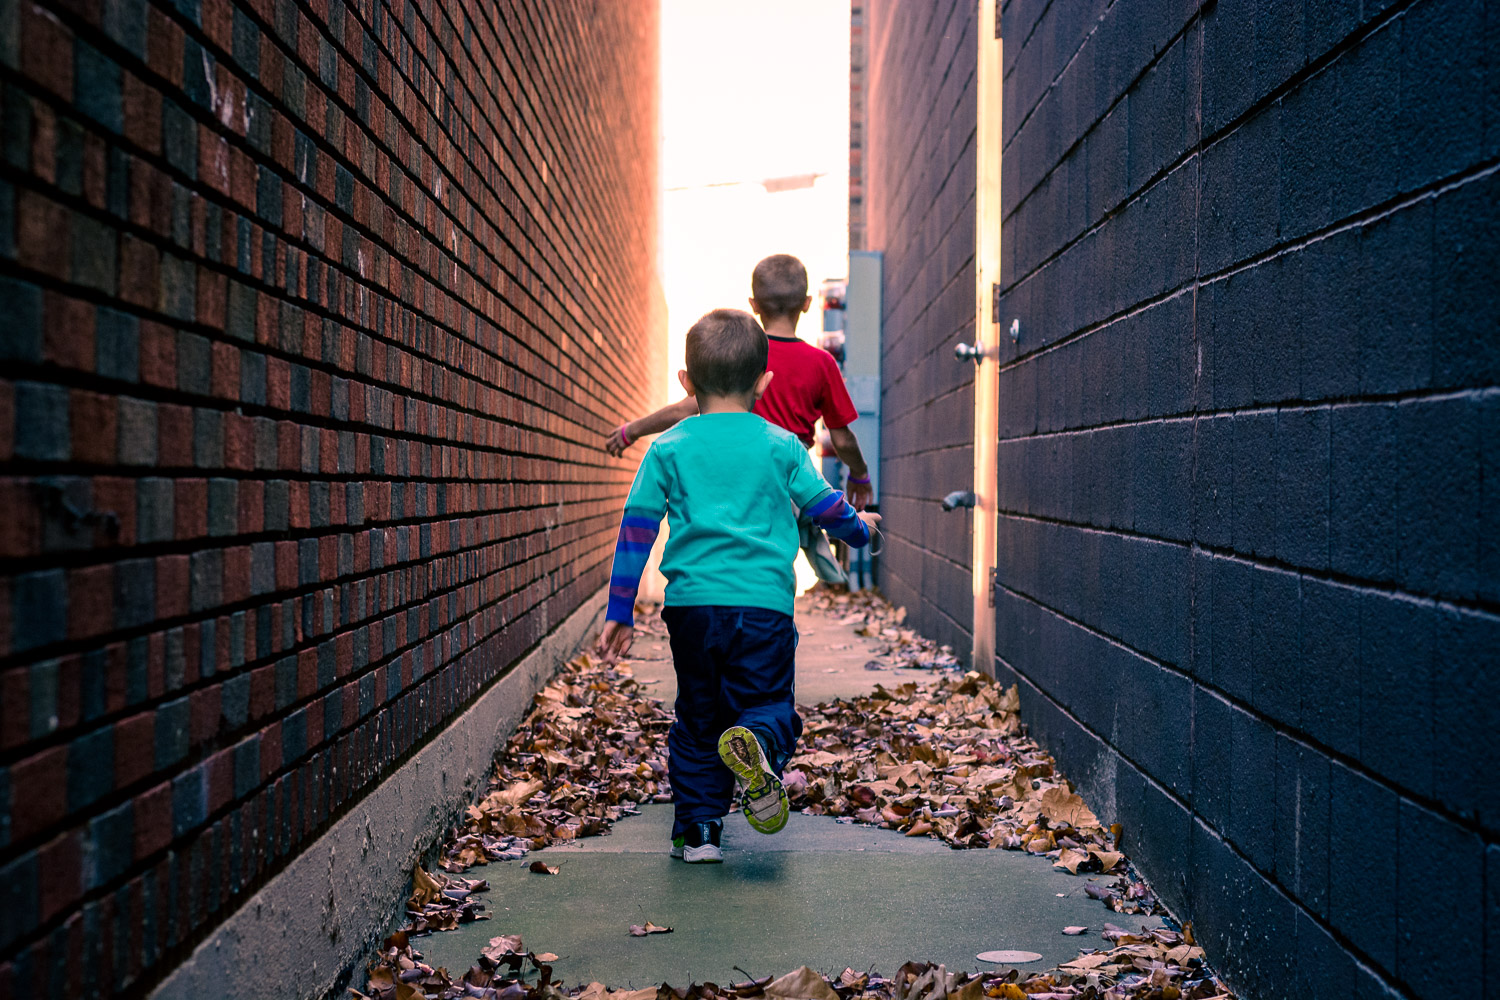 kids running in an alley